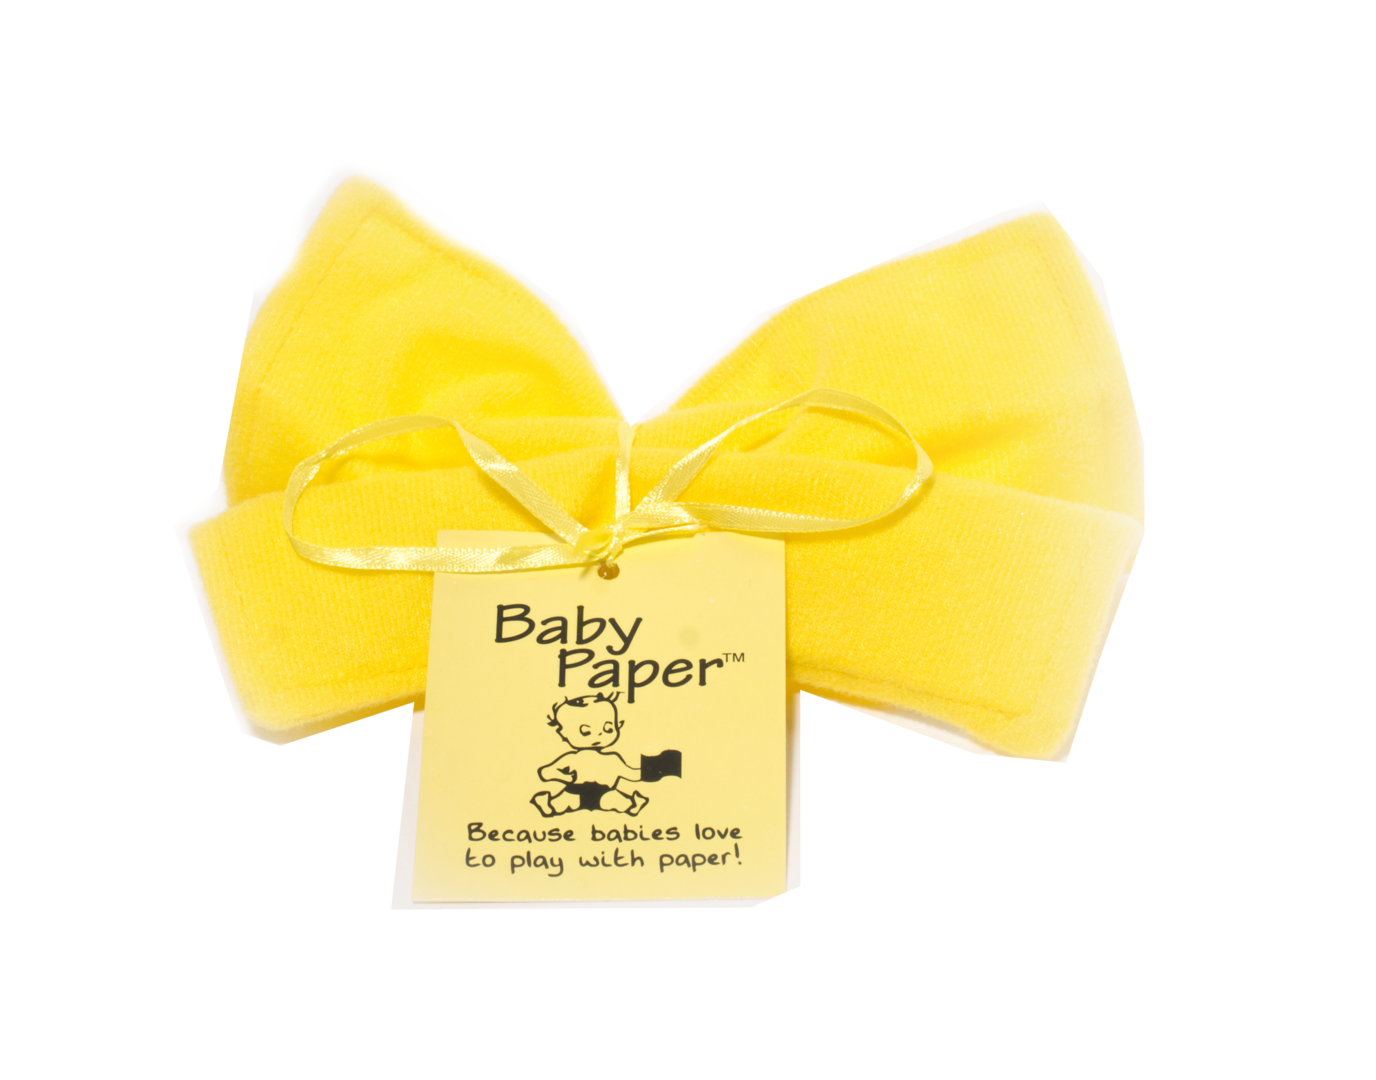 Baby Paper Crinkly Baby Toy - Yellow